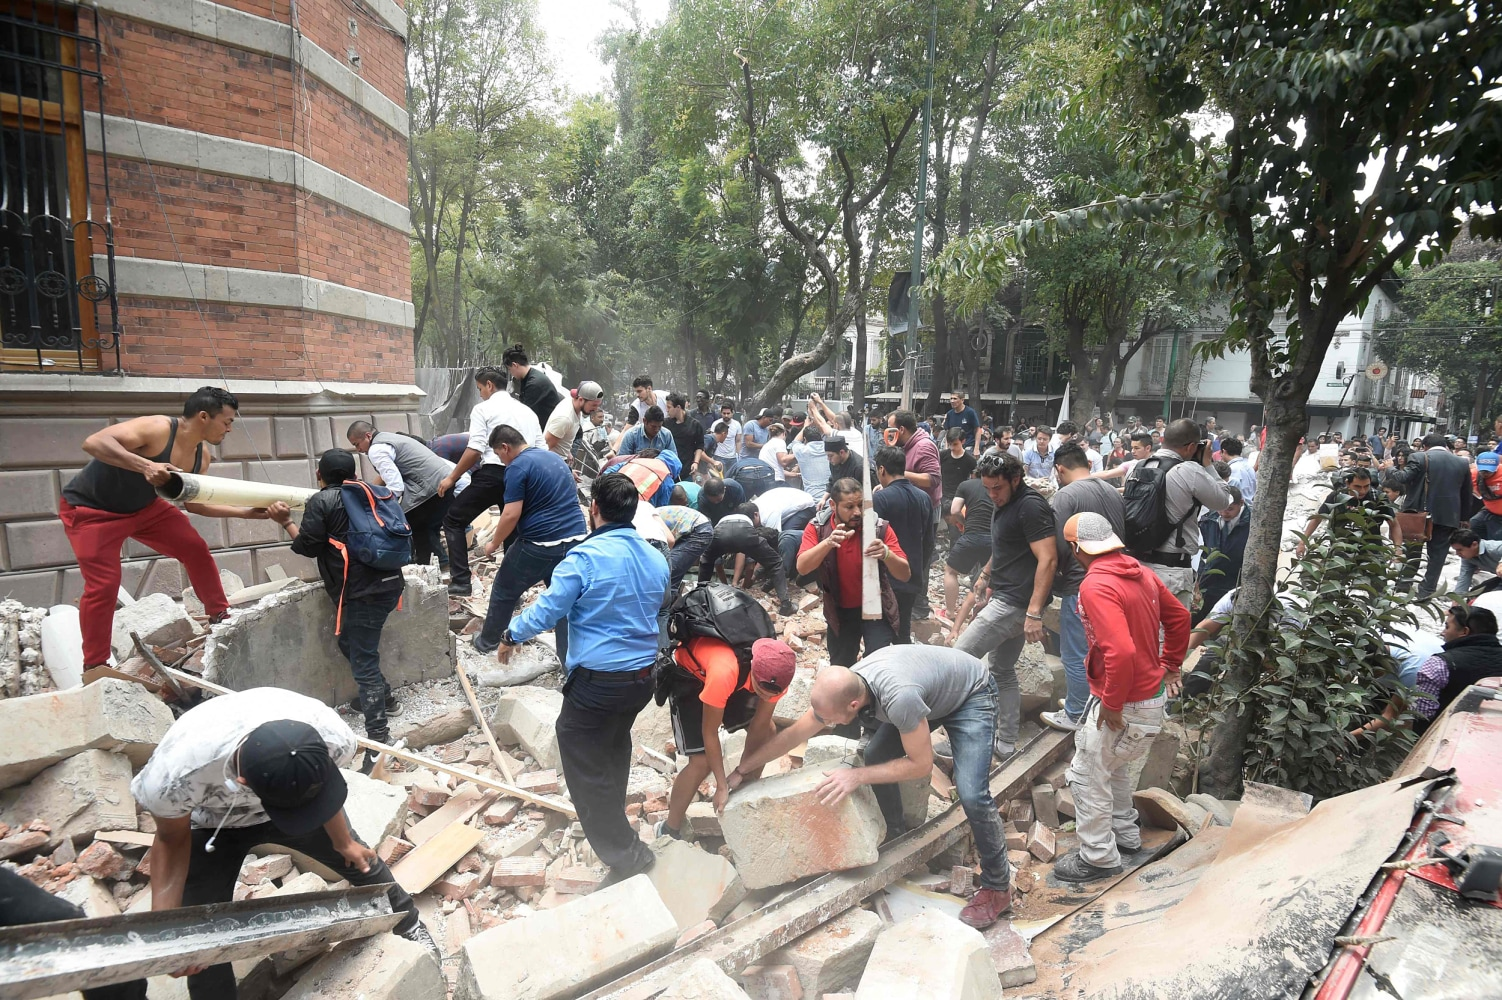 More than 200 dead as 7.1 magnitude quake hits Mexico